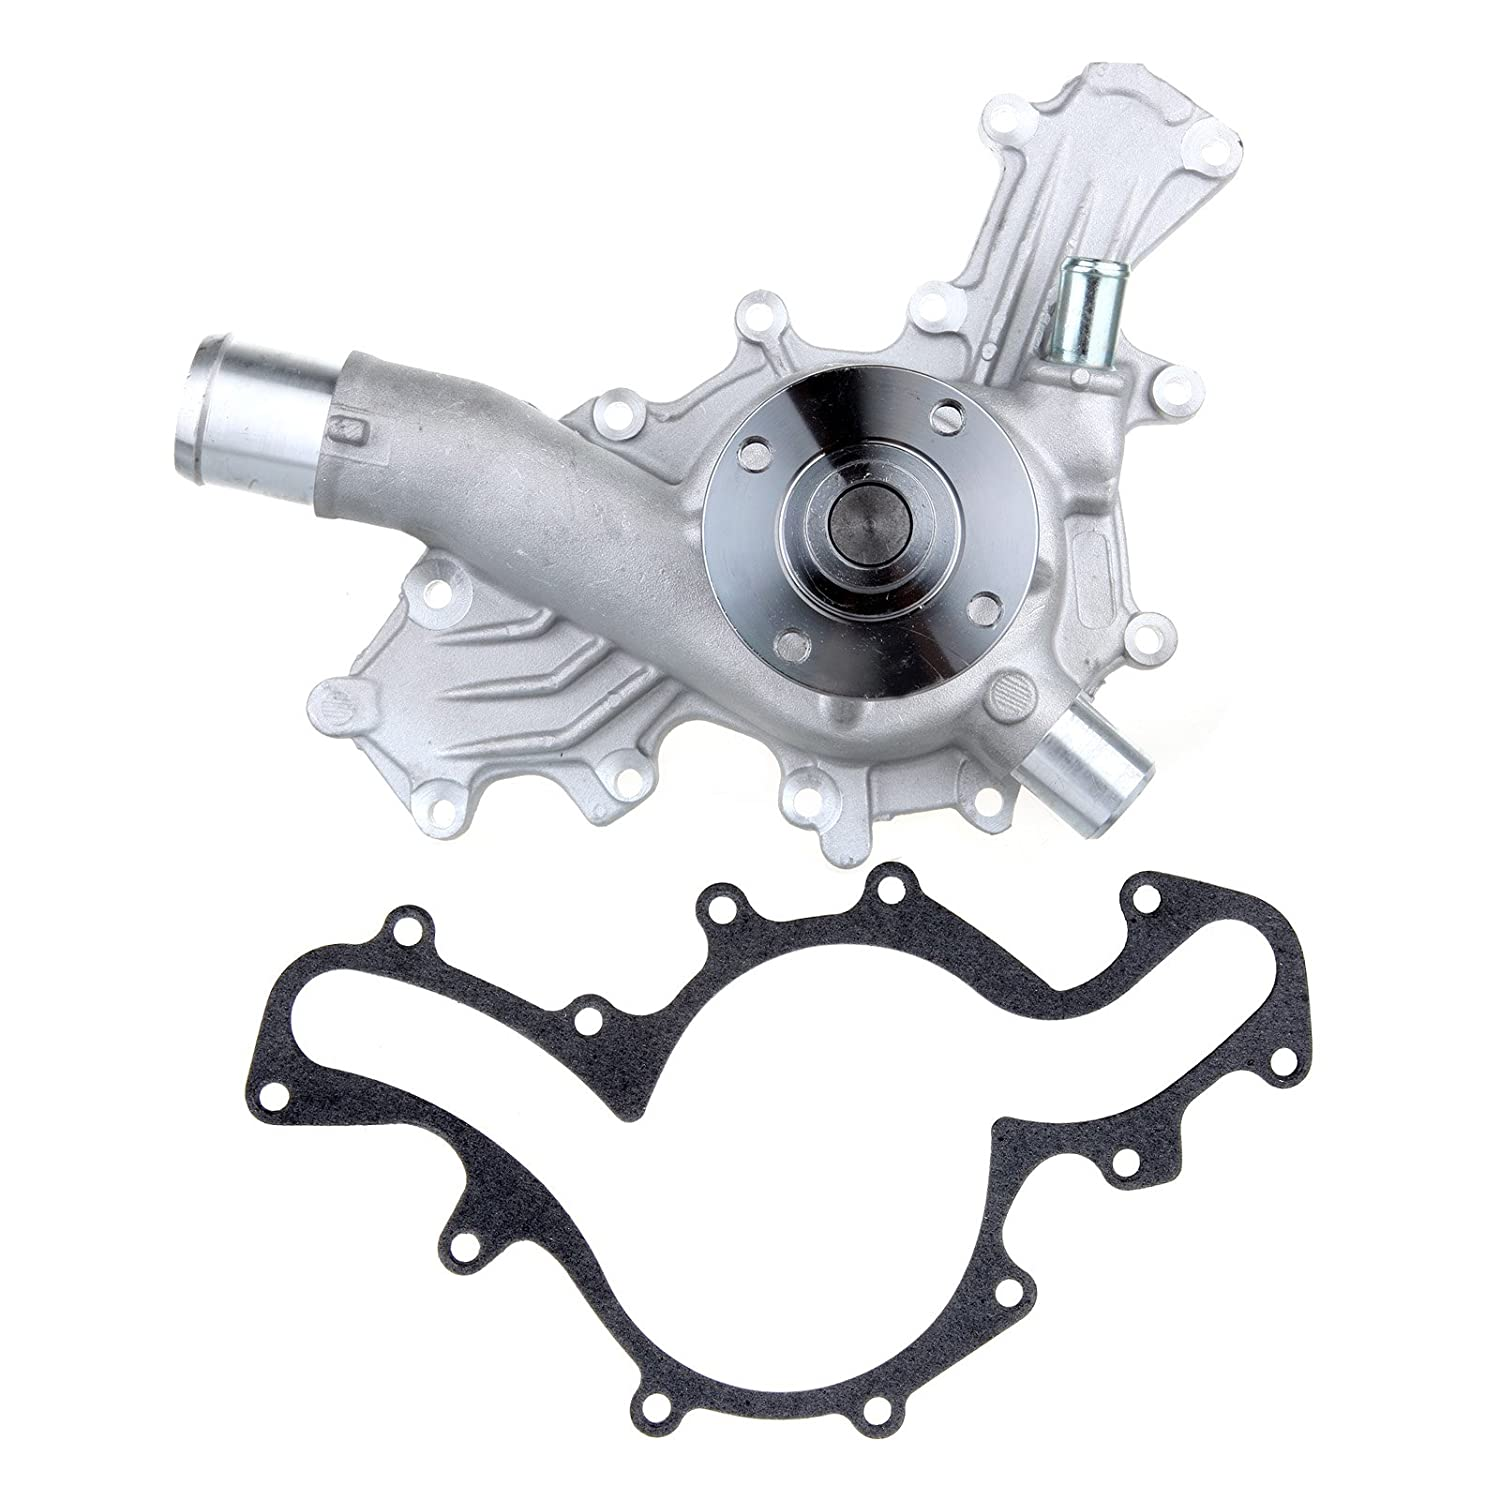 ECCPP Engine New Cooling Water Pump with Gasket For 97-11 Ford 4.0L SOHC V6 VIN E, K, N 053901-5211-1100281